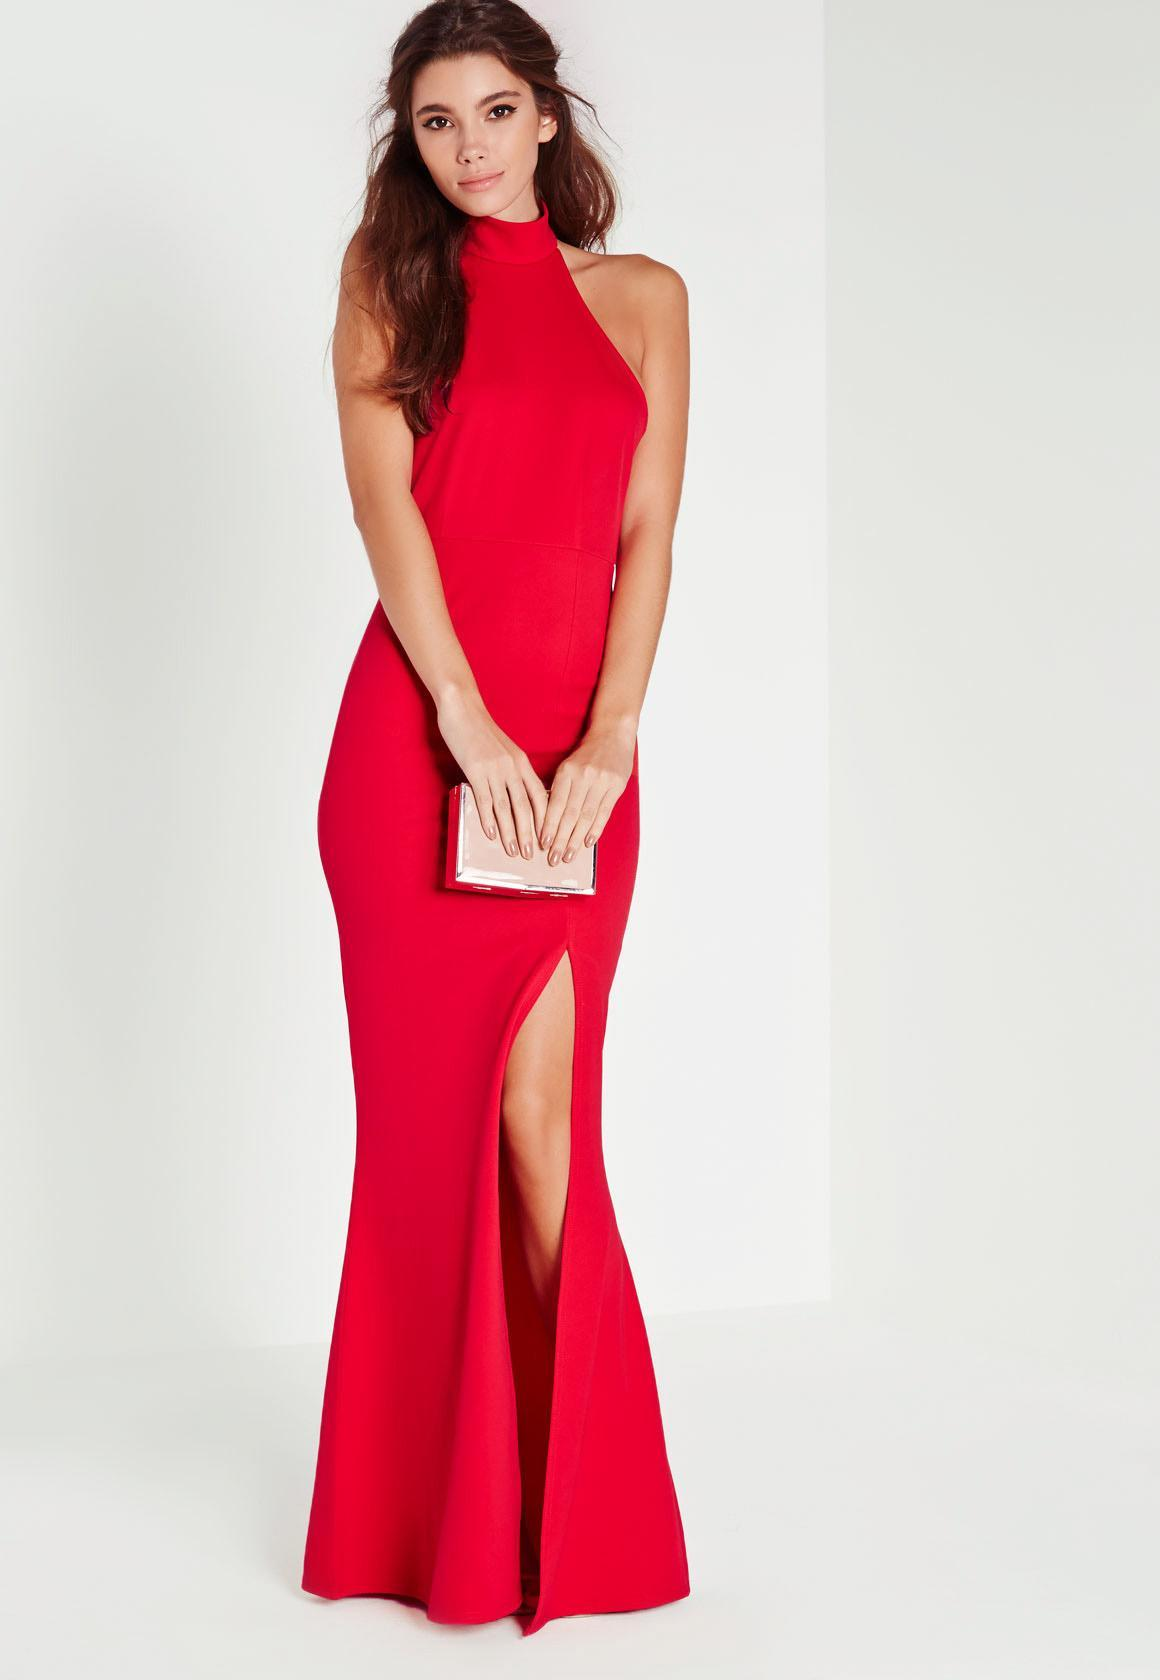 Robe longue rouge dos nu